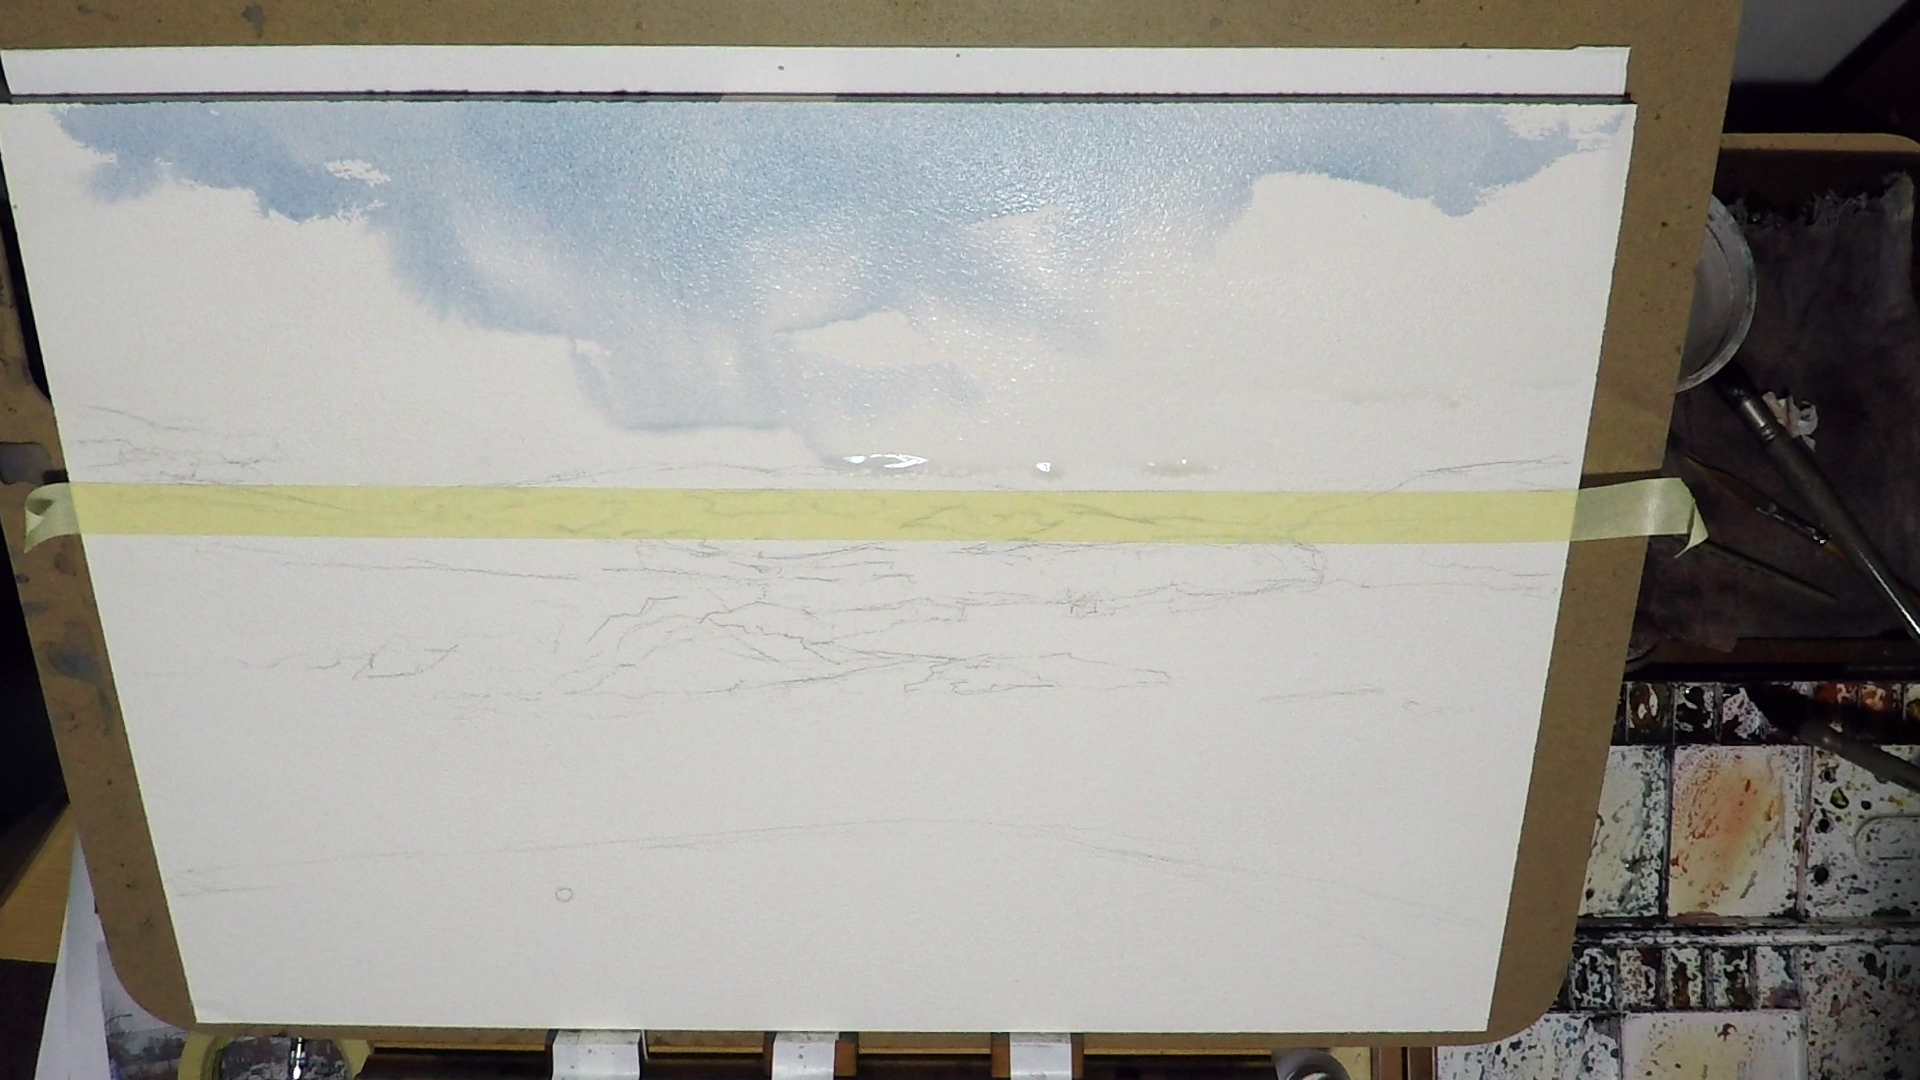 2. While it's still wet, I started to put in some Cobalt Blue, that will be the blue sky. Again I keep in mind the shape of the cloud. When the paint hits the wet area, it becomes a soft edge. When the paint hits the dry area, it'll be hard edge. Clouds are basically a mixture of hard and soft edge.